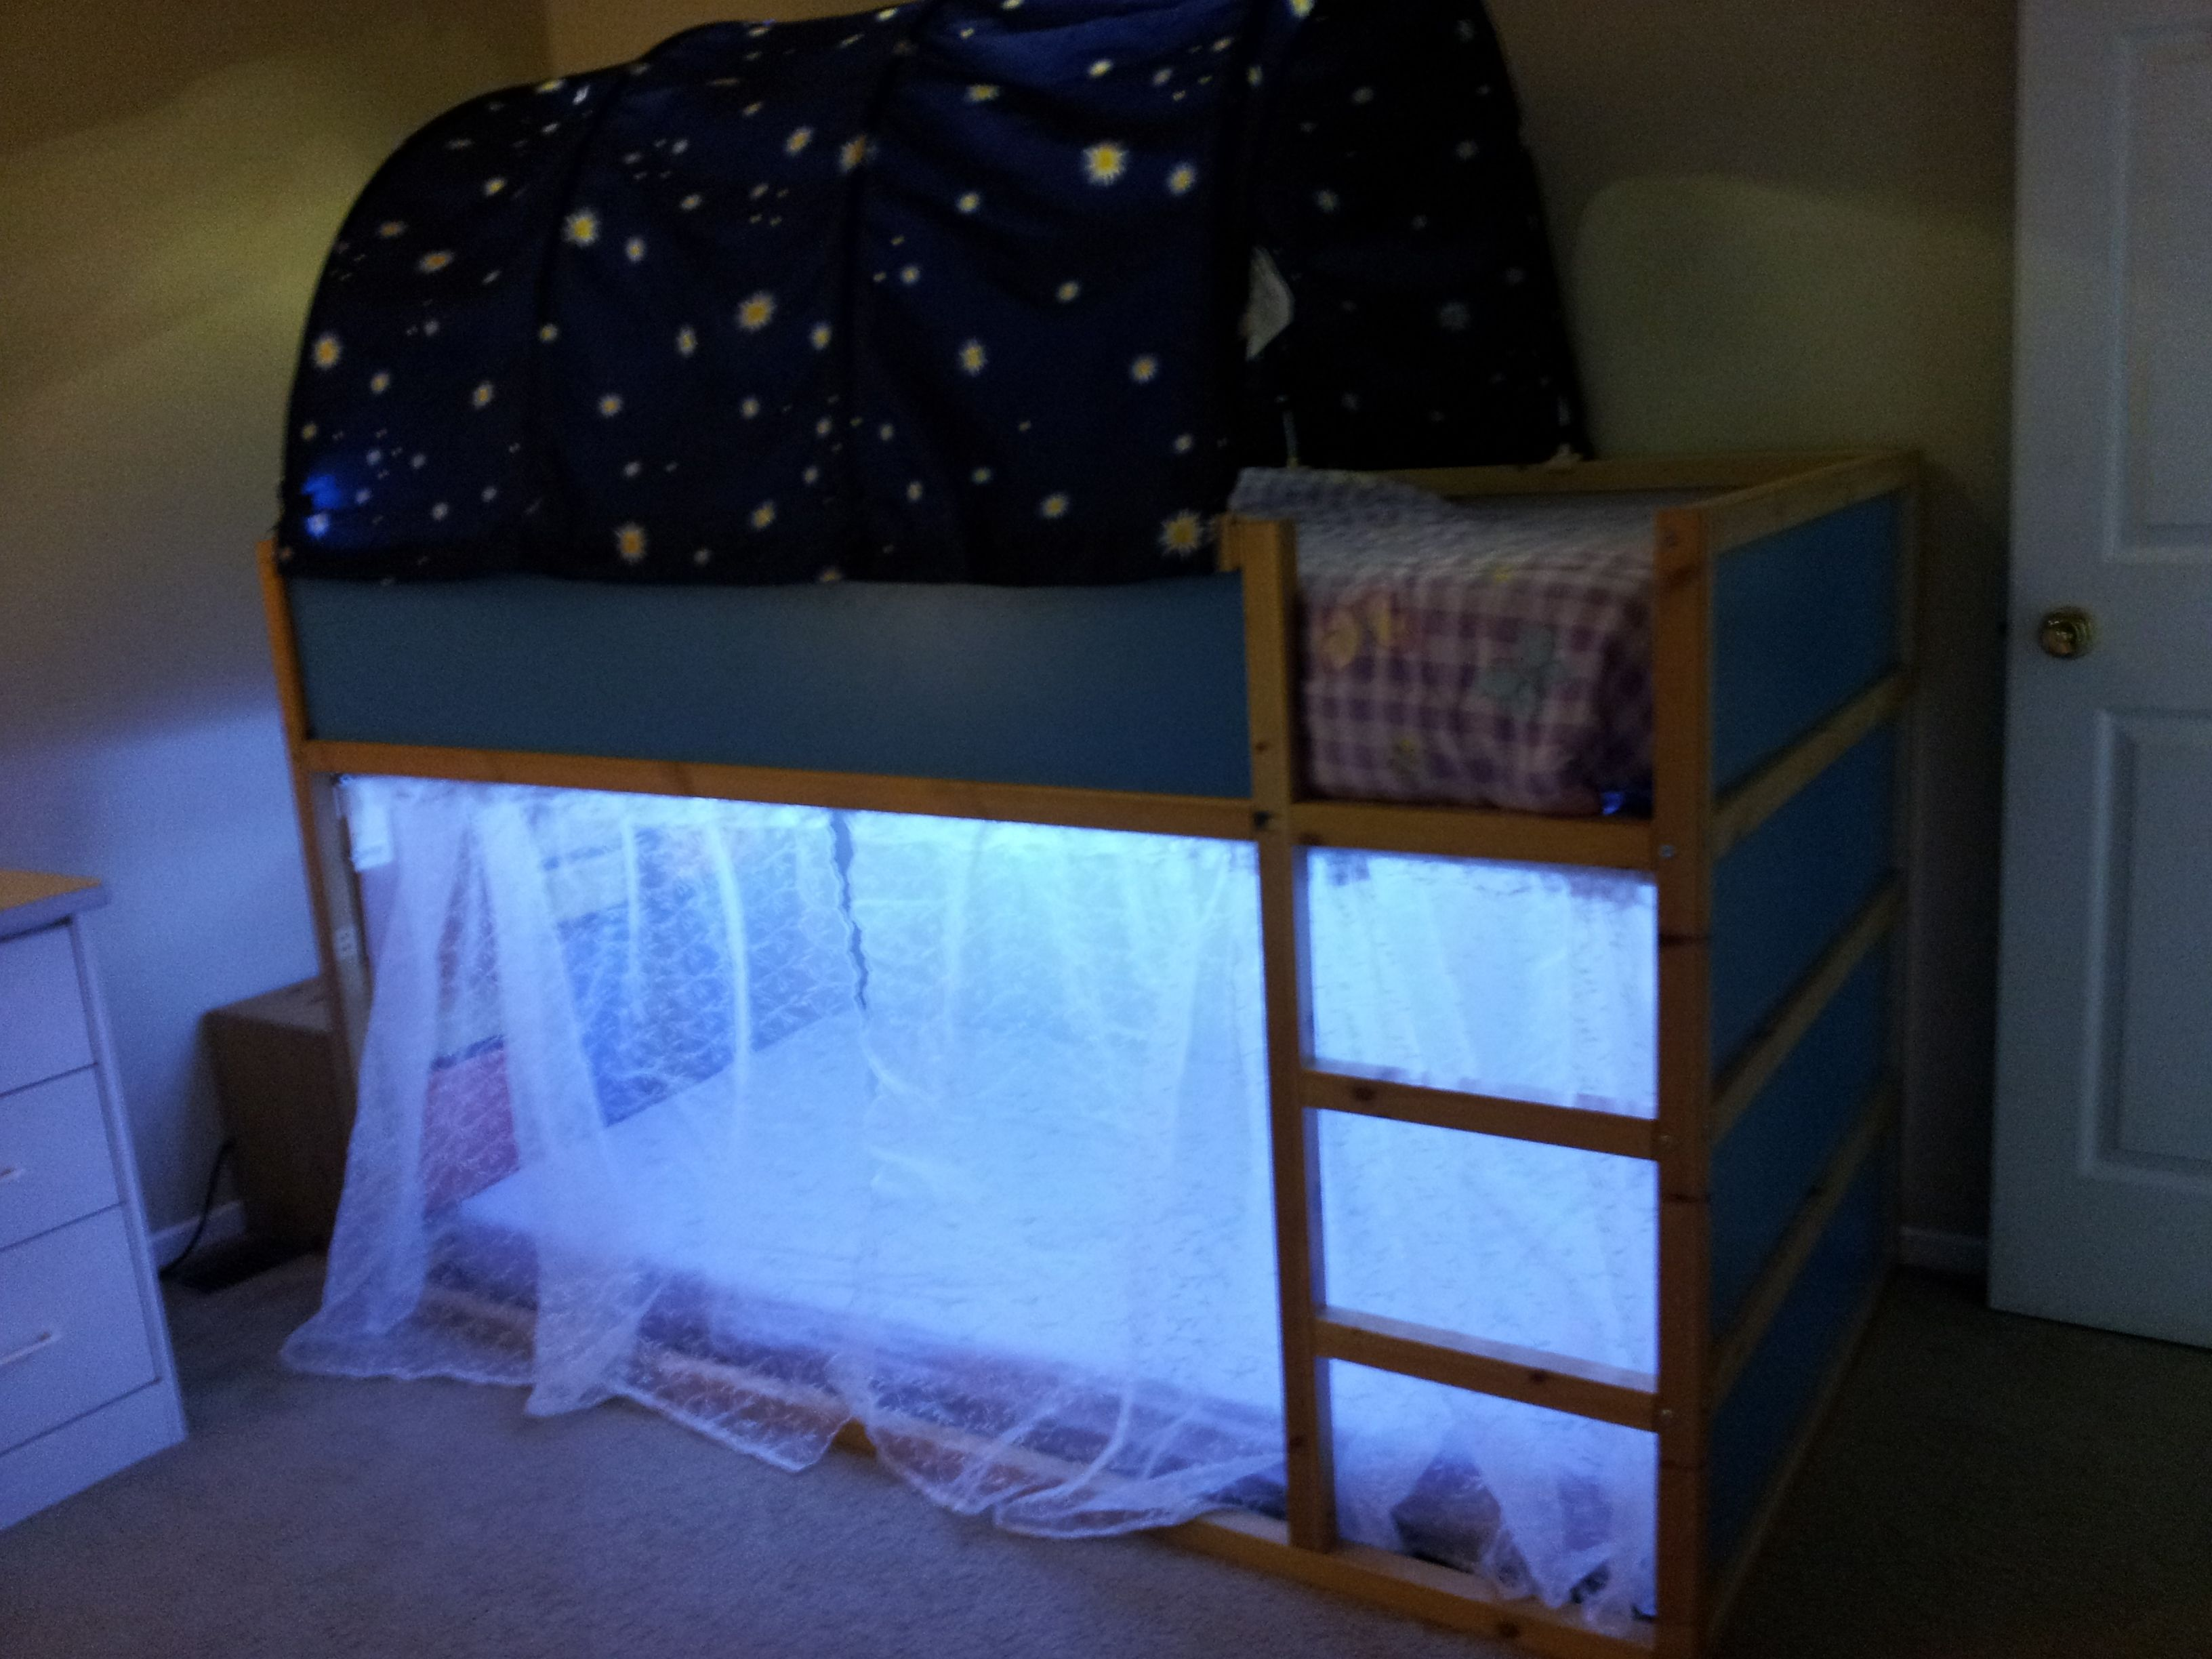 Bunk bed curtains - Kura Bed With A Trofast Unit For Stairs Added Some Curtains And Led Christmas Lights